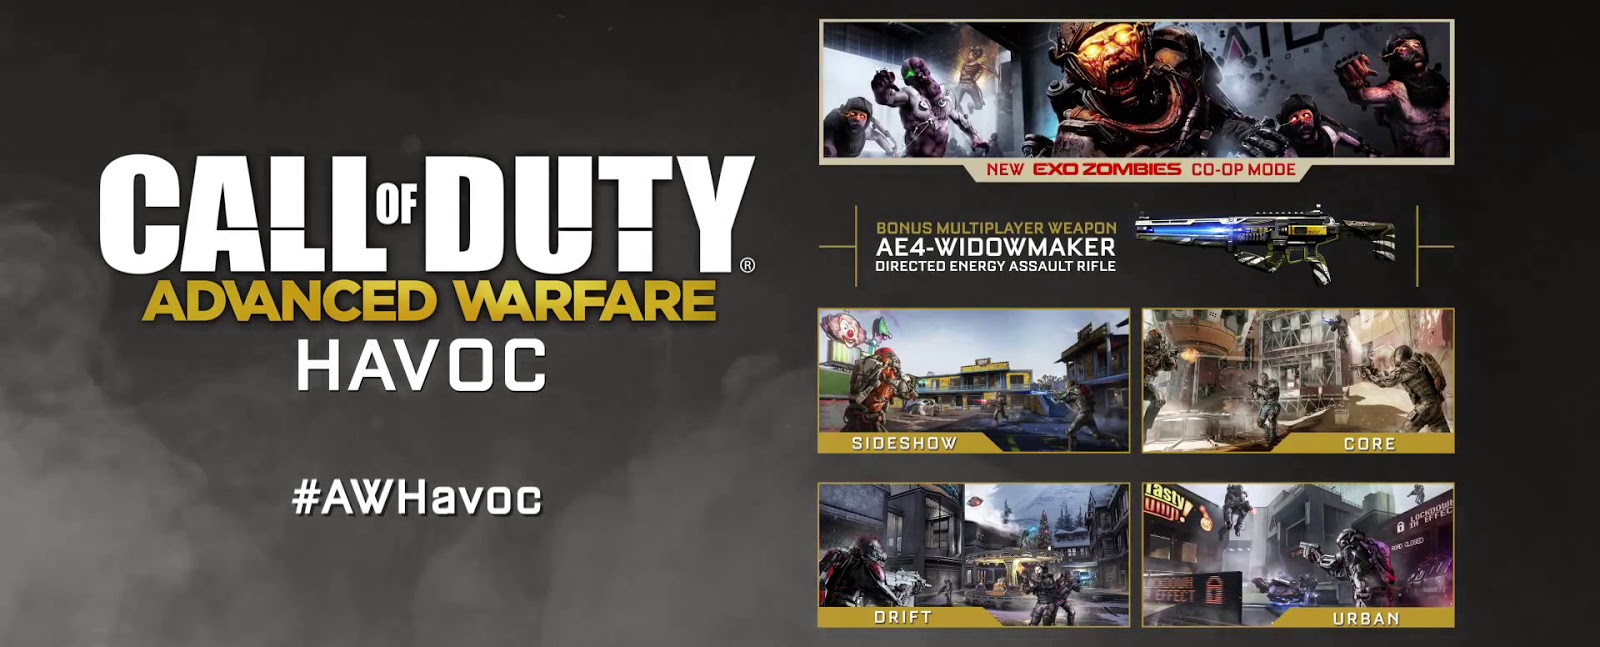 "Call of Duty Advanced Warfare ""Havoc"" exo-Zombies"